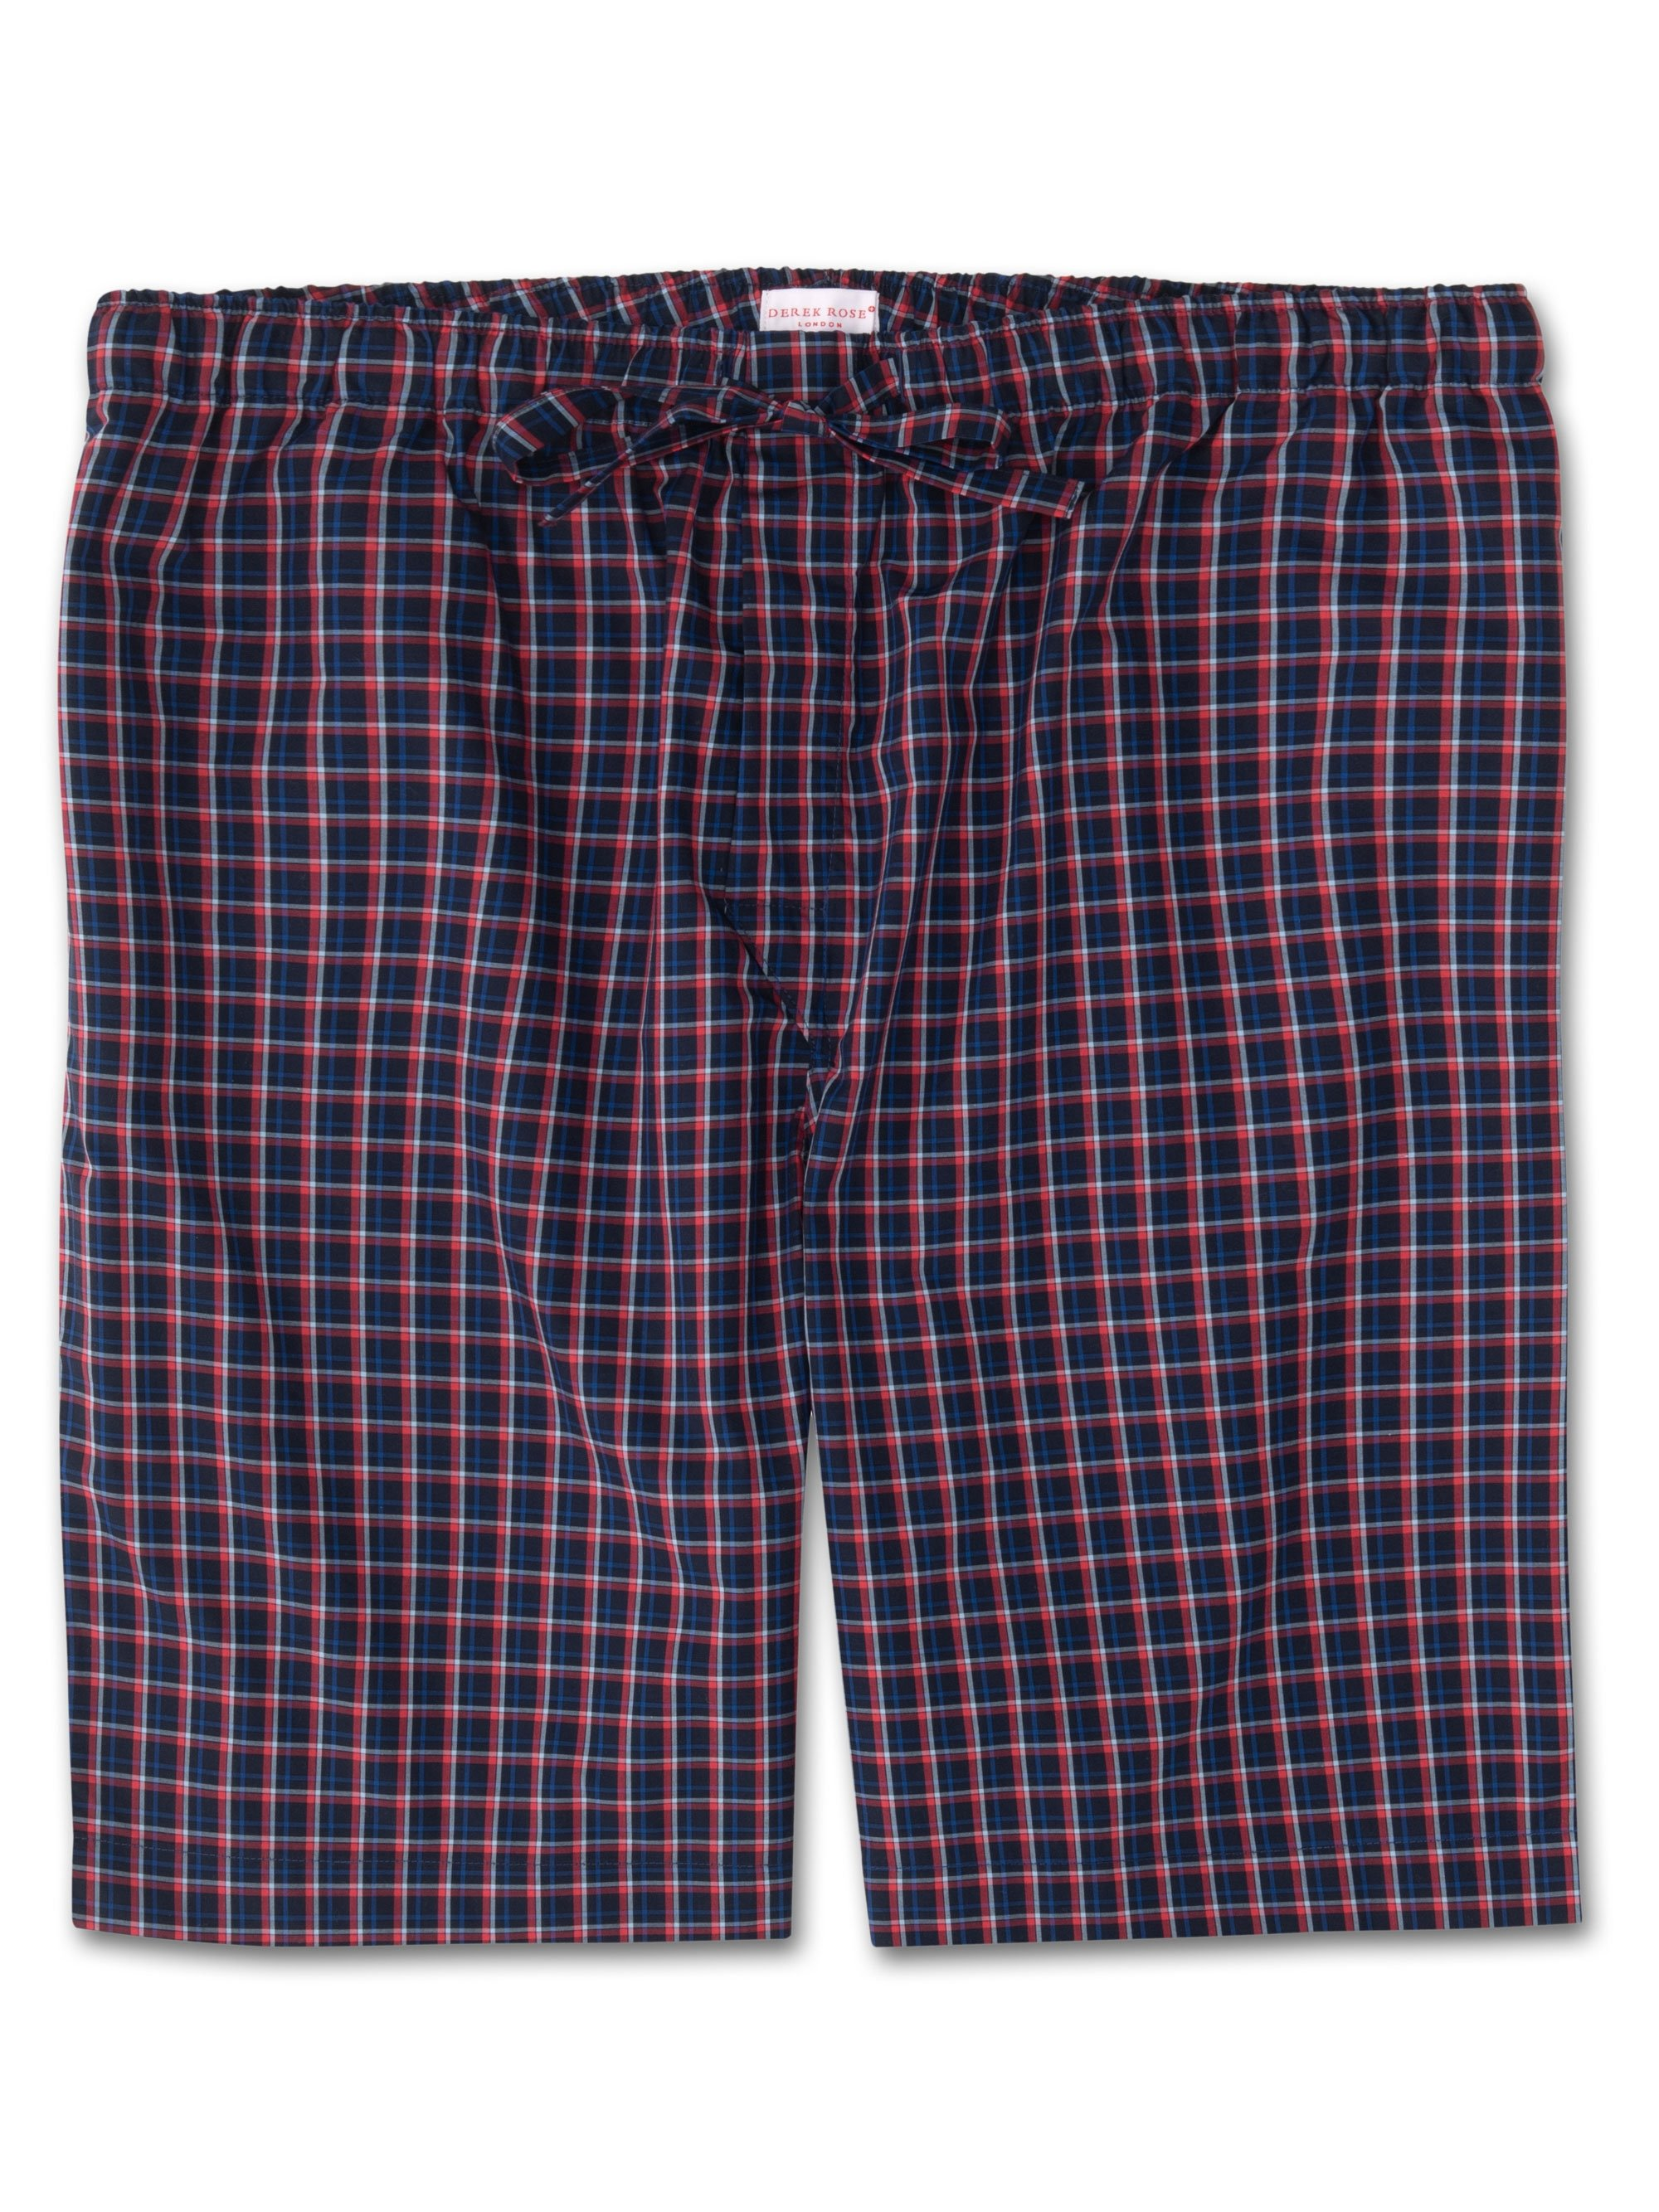 Men's Lounge Shorts Barker 22 Cotton Check Navy